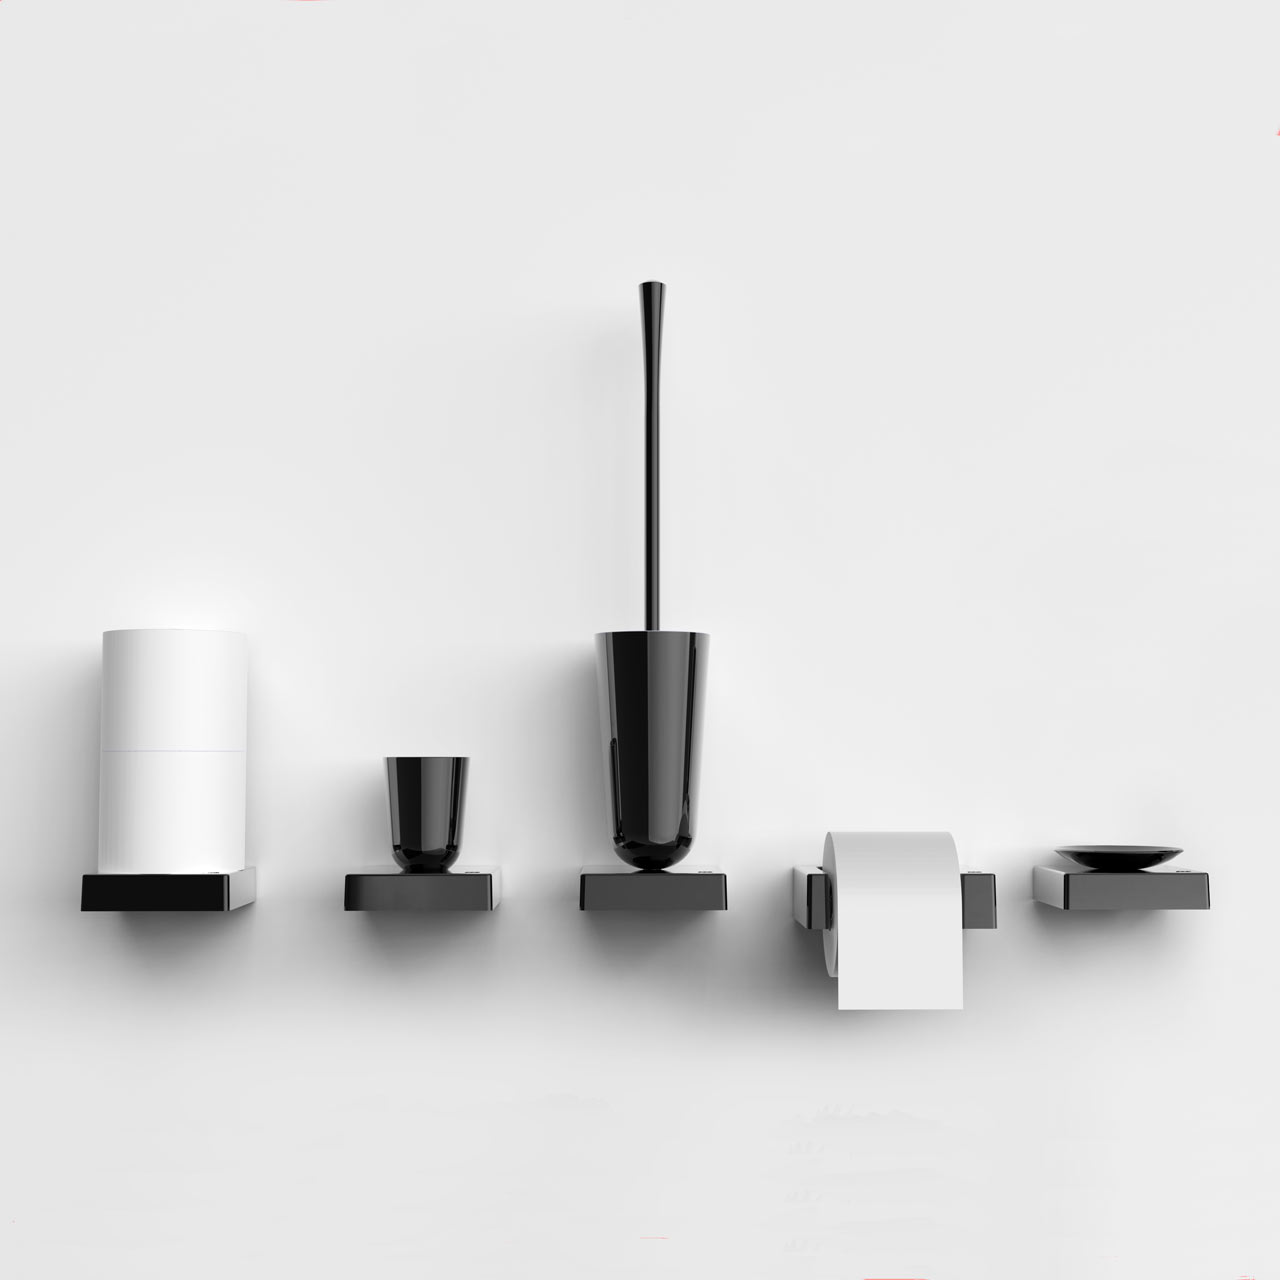 platform a line of bathroom accessories by brad ascalon